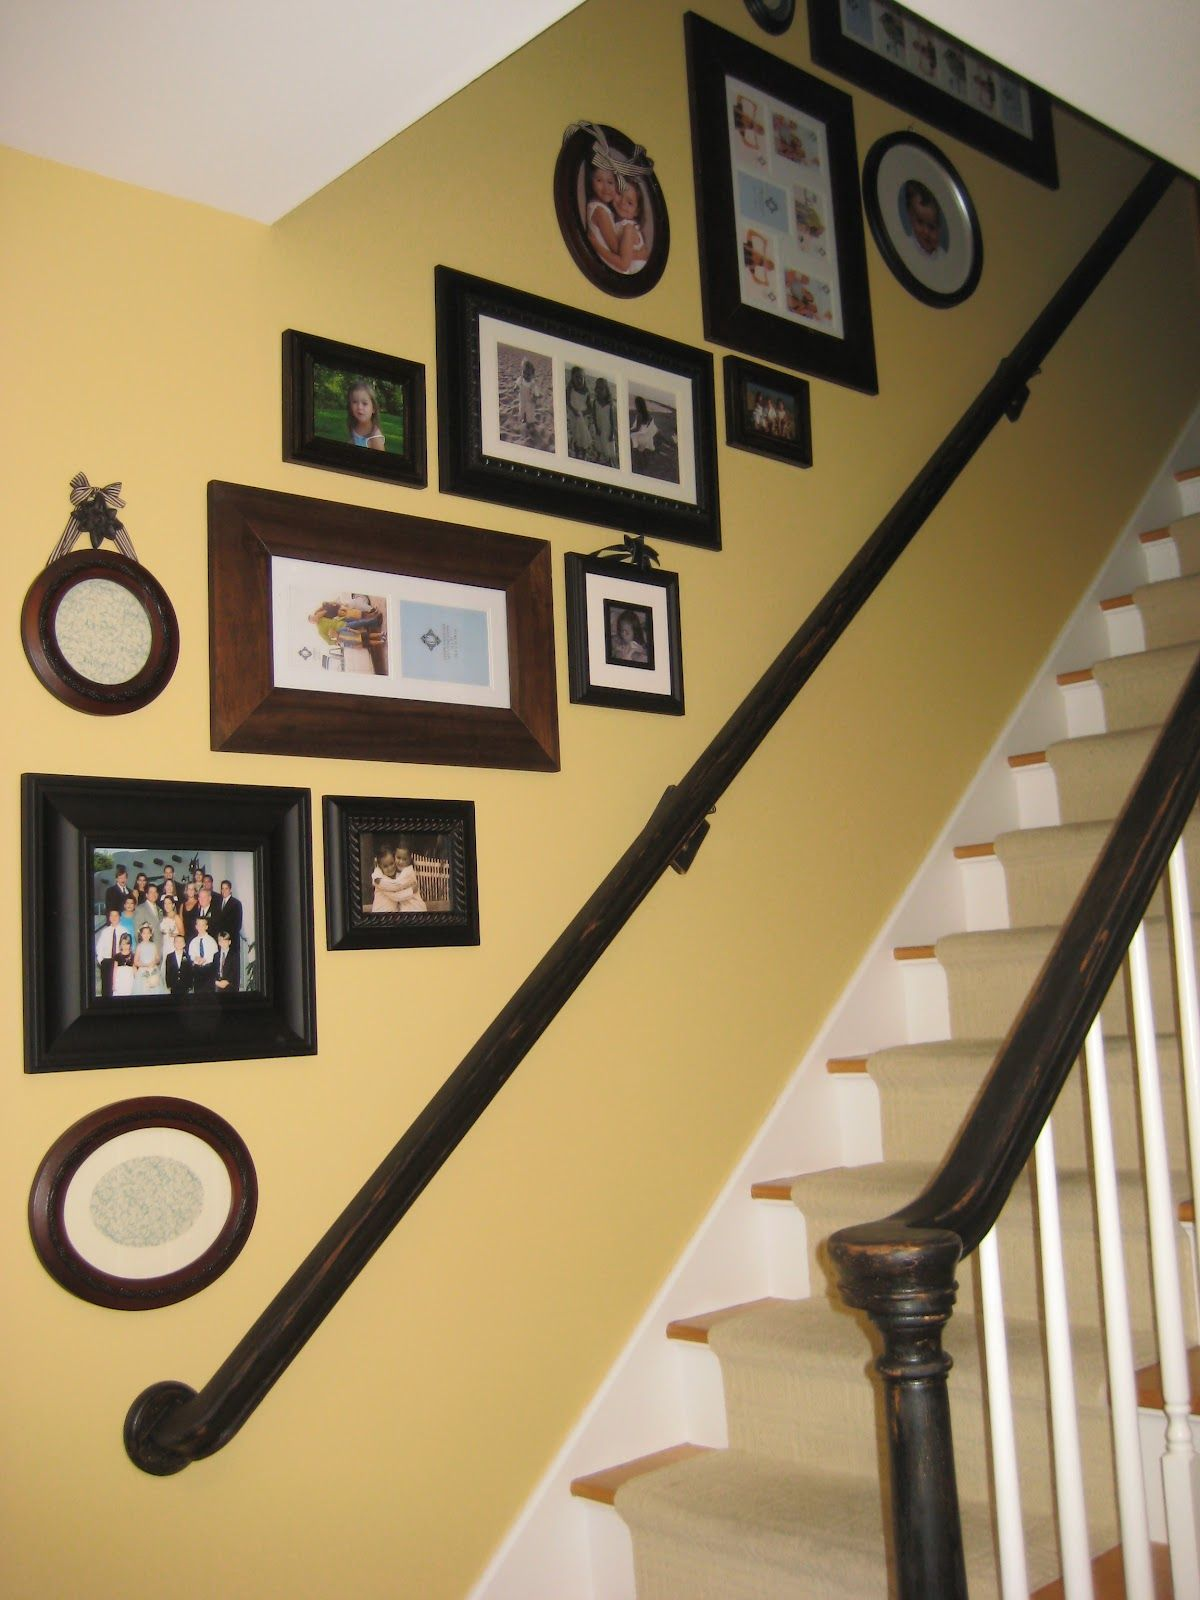 Pin by Anna Emerson on Home decor | Pinterest | Hanging pictures ...